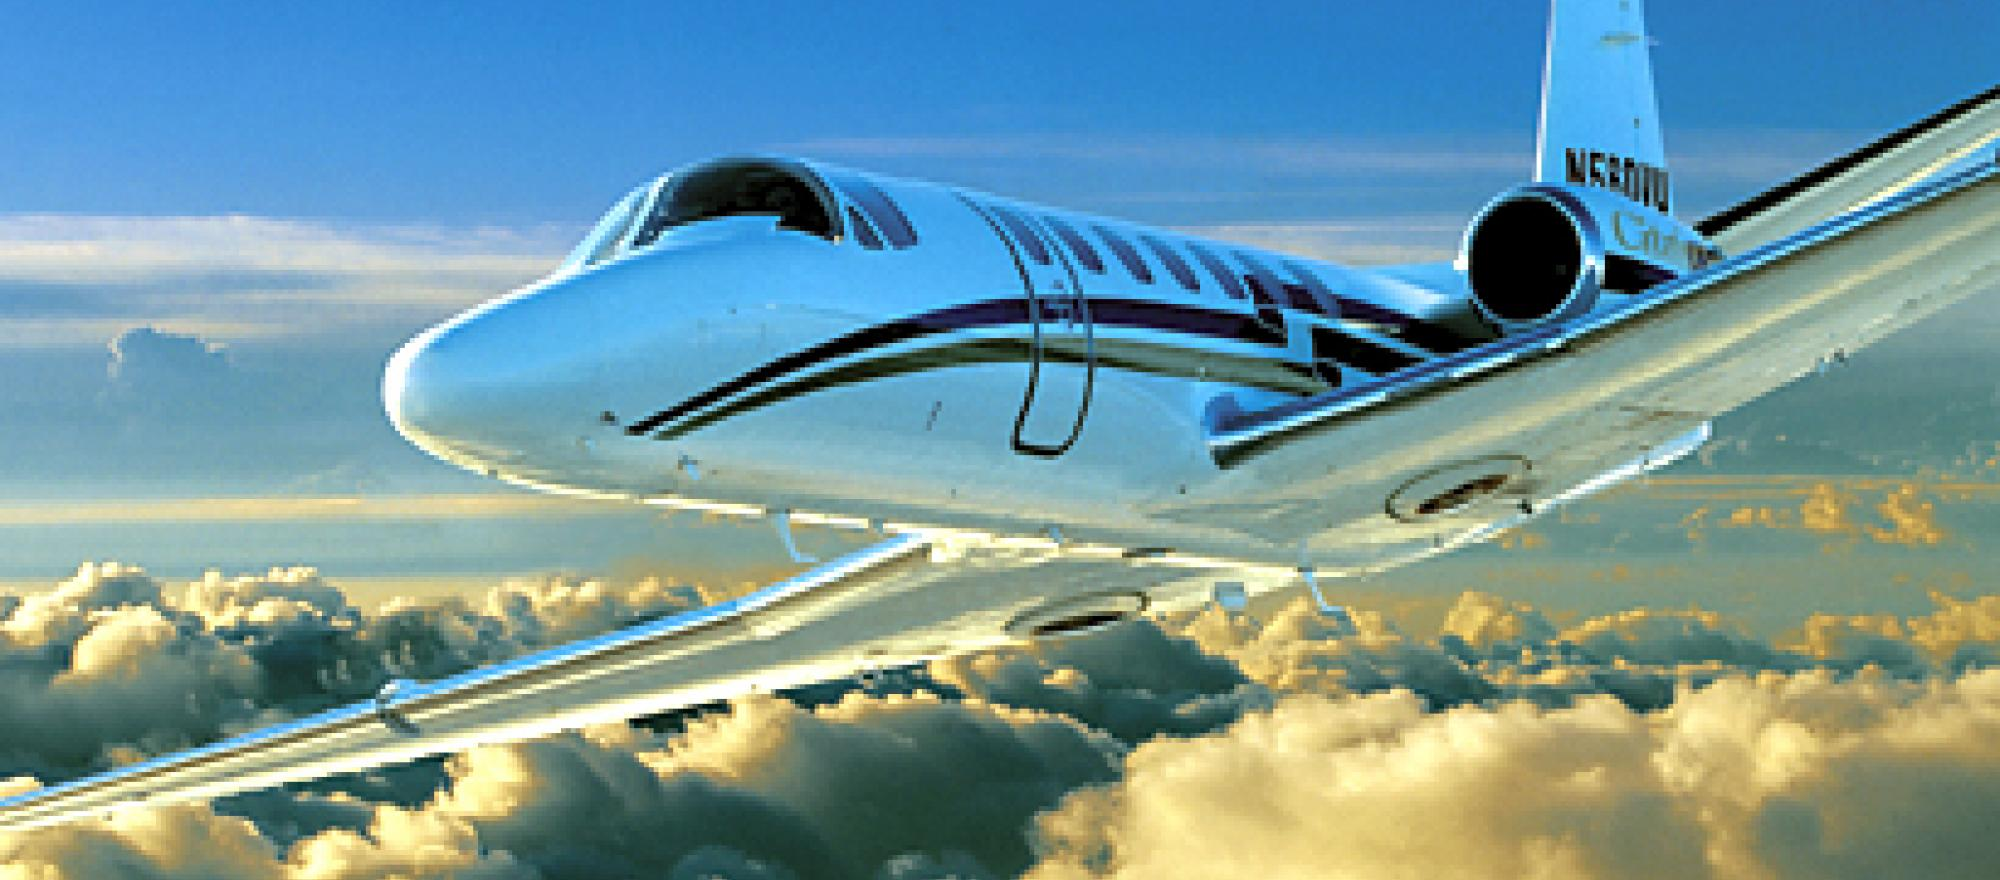 """New owners """"don't always want their shiny airplane in the hands of stranger"""